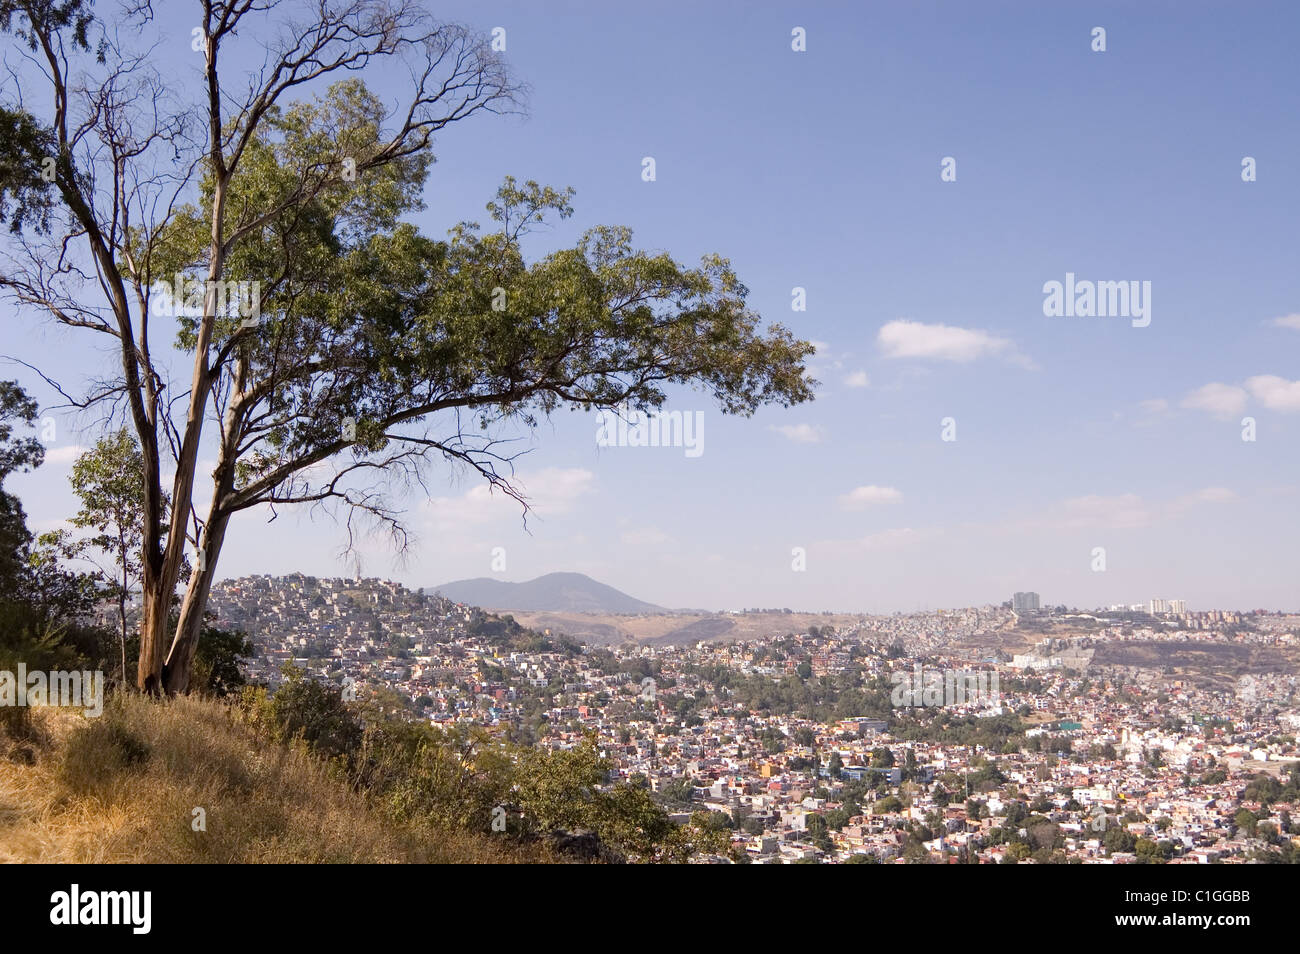 Eucalyptus globulus tree on a hill in Mexico city - Stock Image